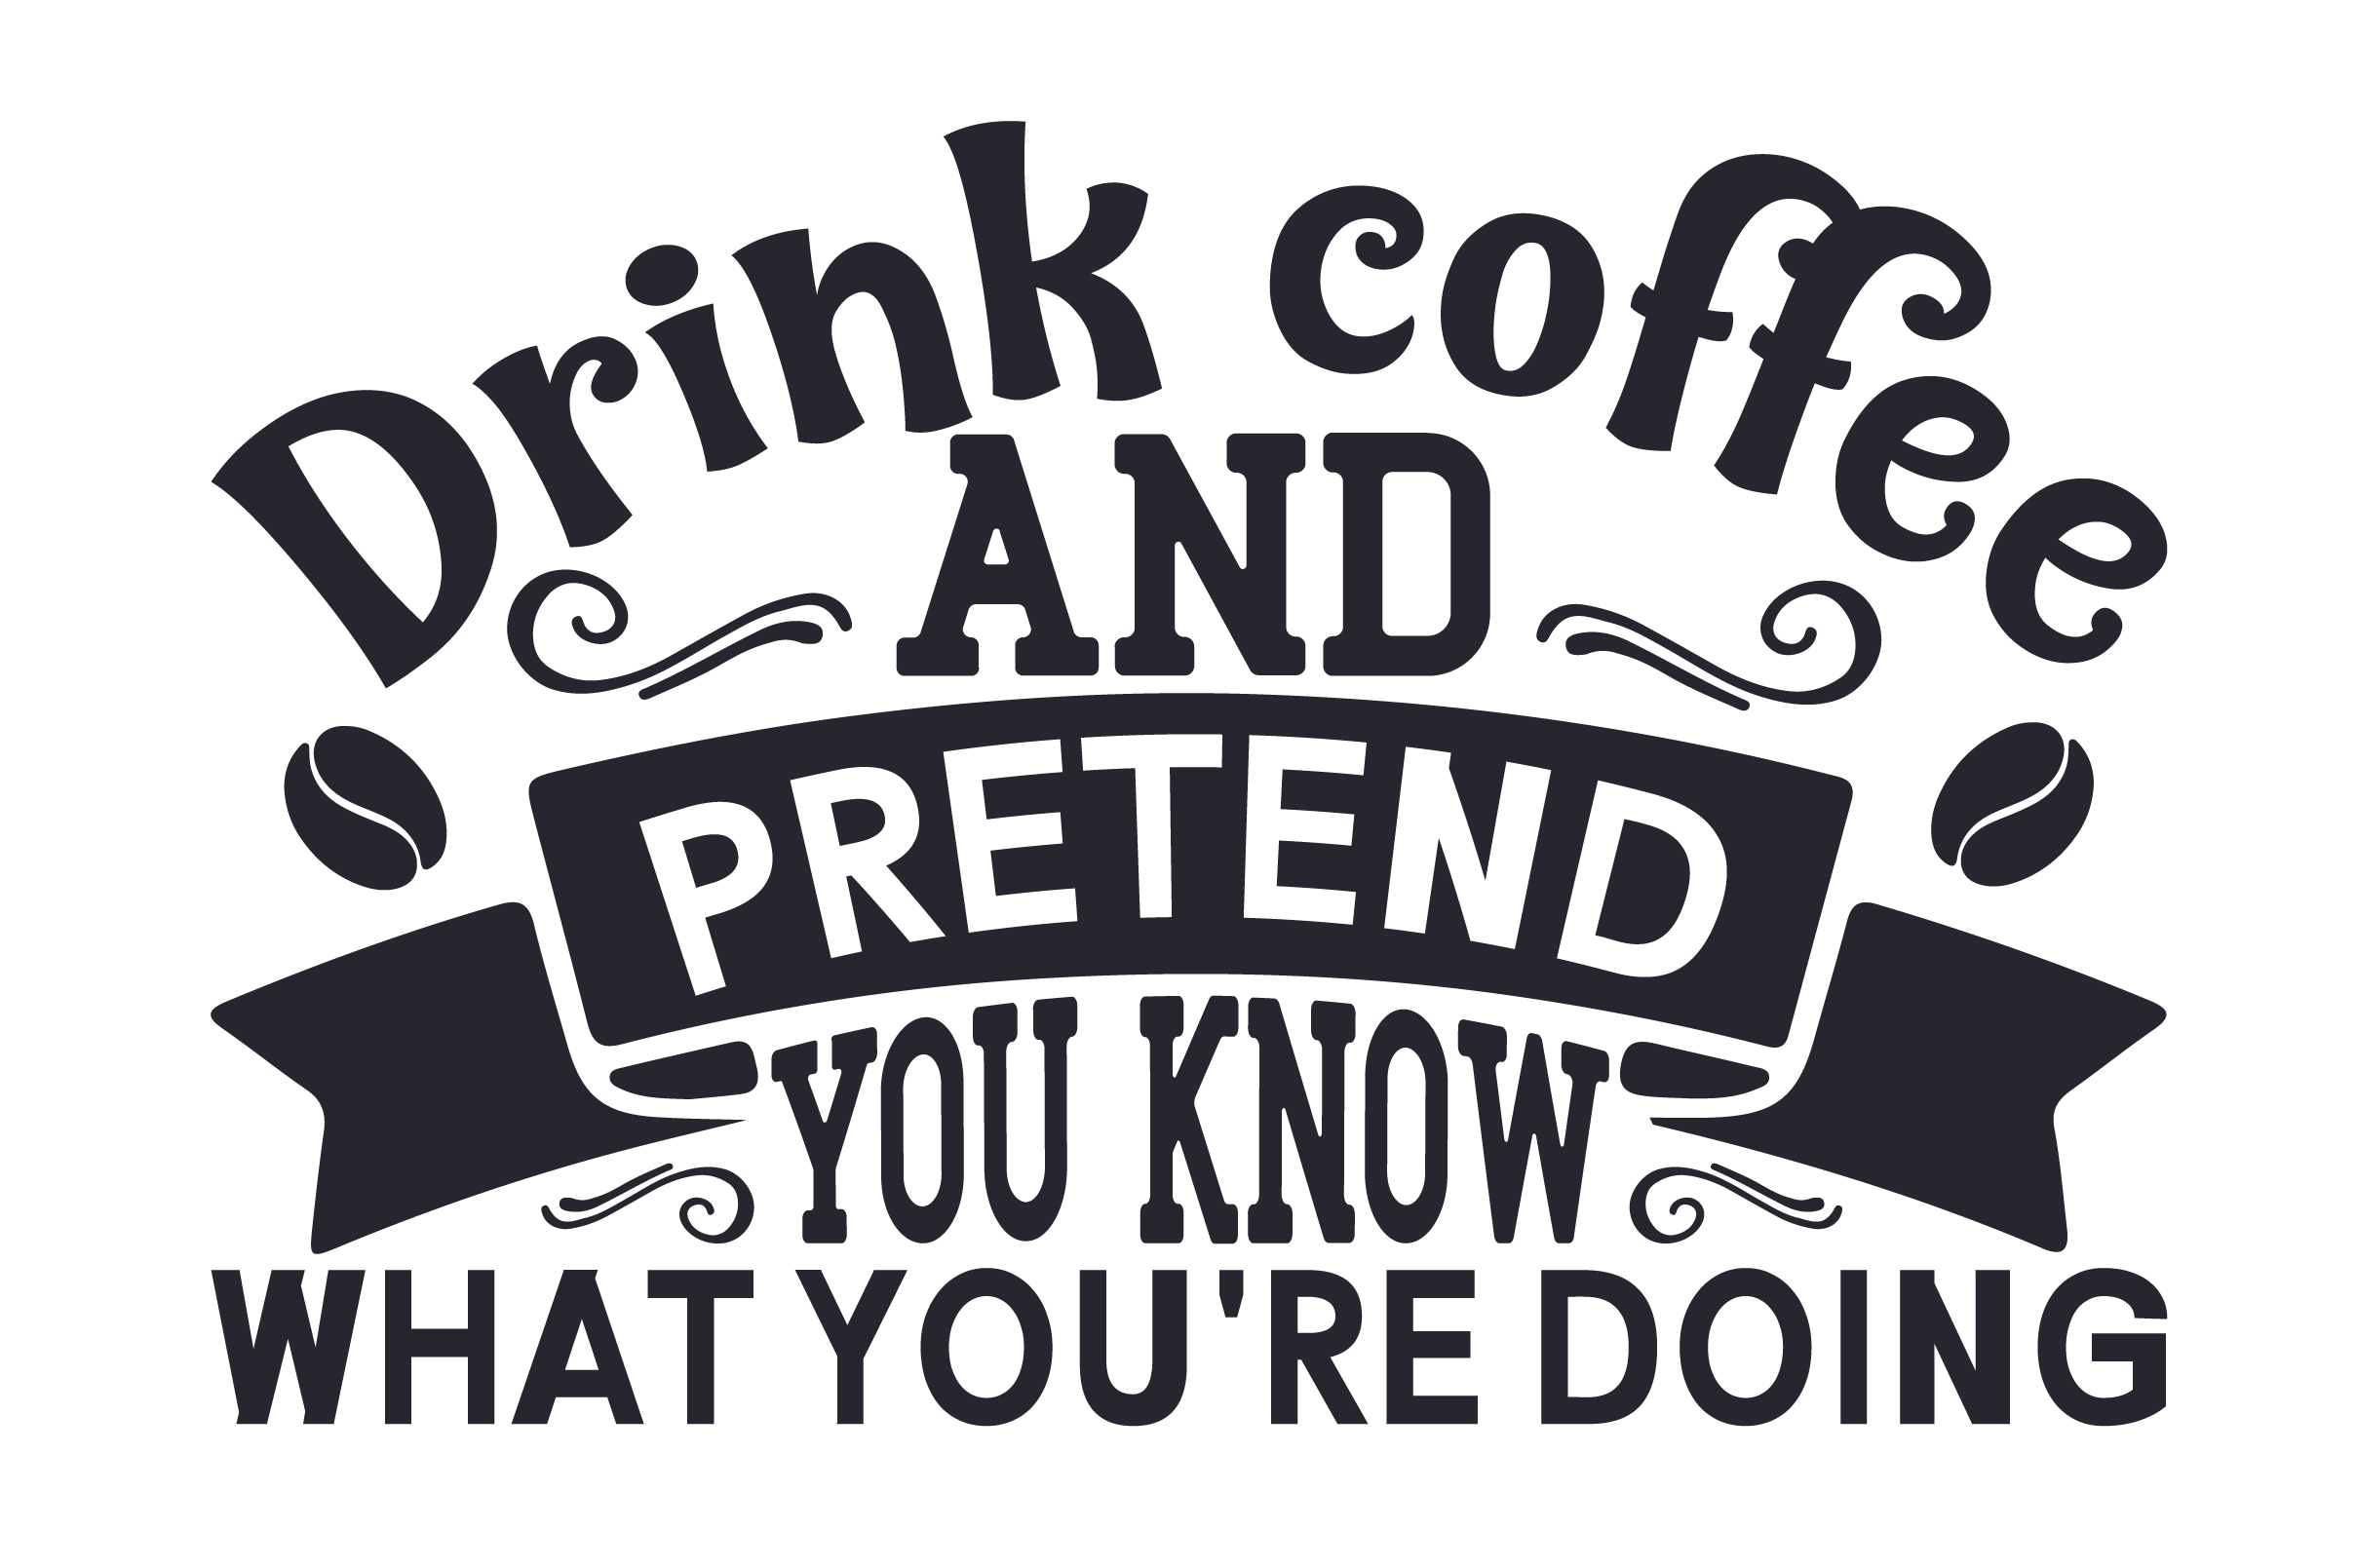 Drink Coffee And Pretend You Know What You Re Doing Svg Cut File By Creative Fabrica Crafts Creative Fabrica